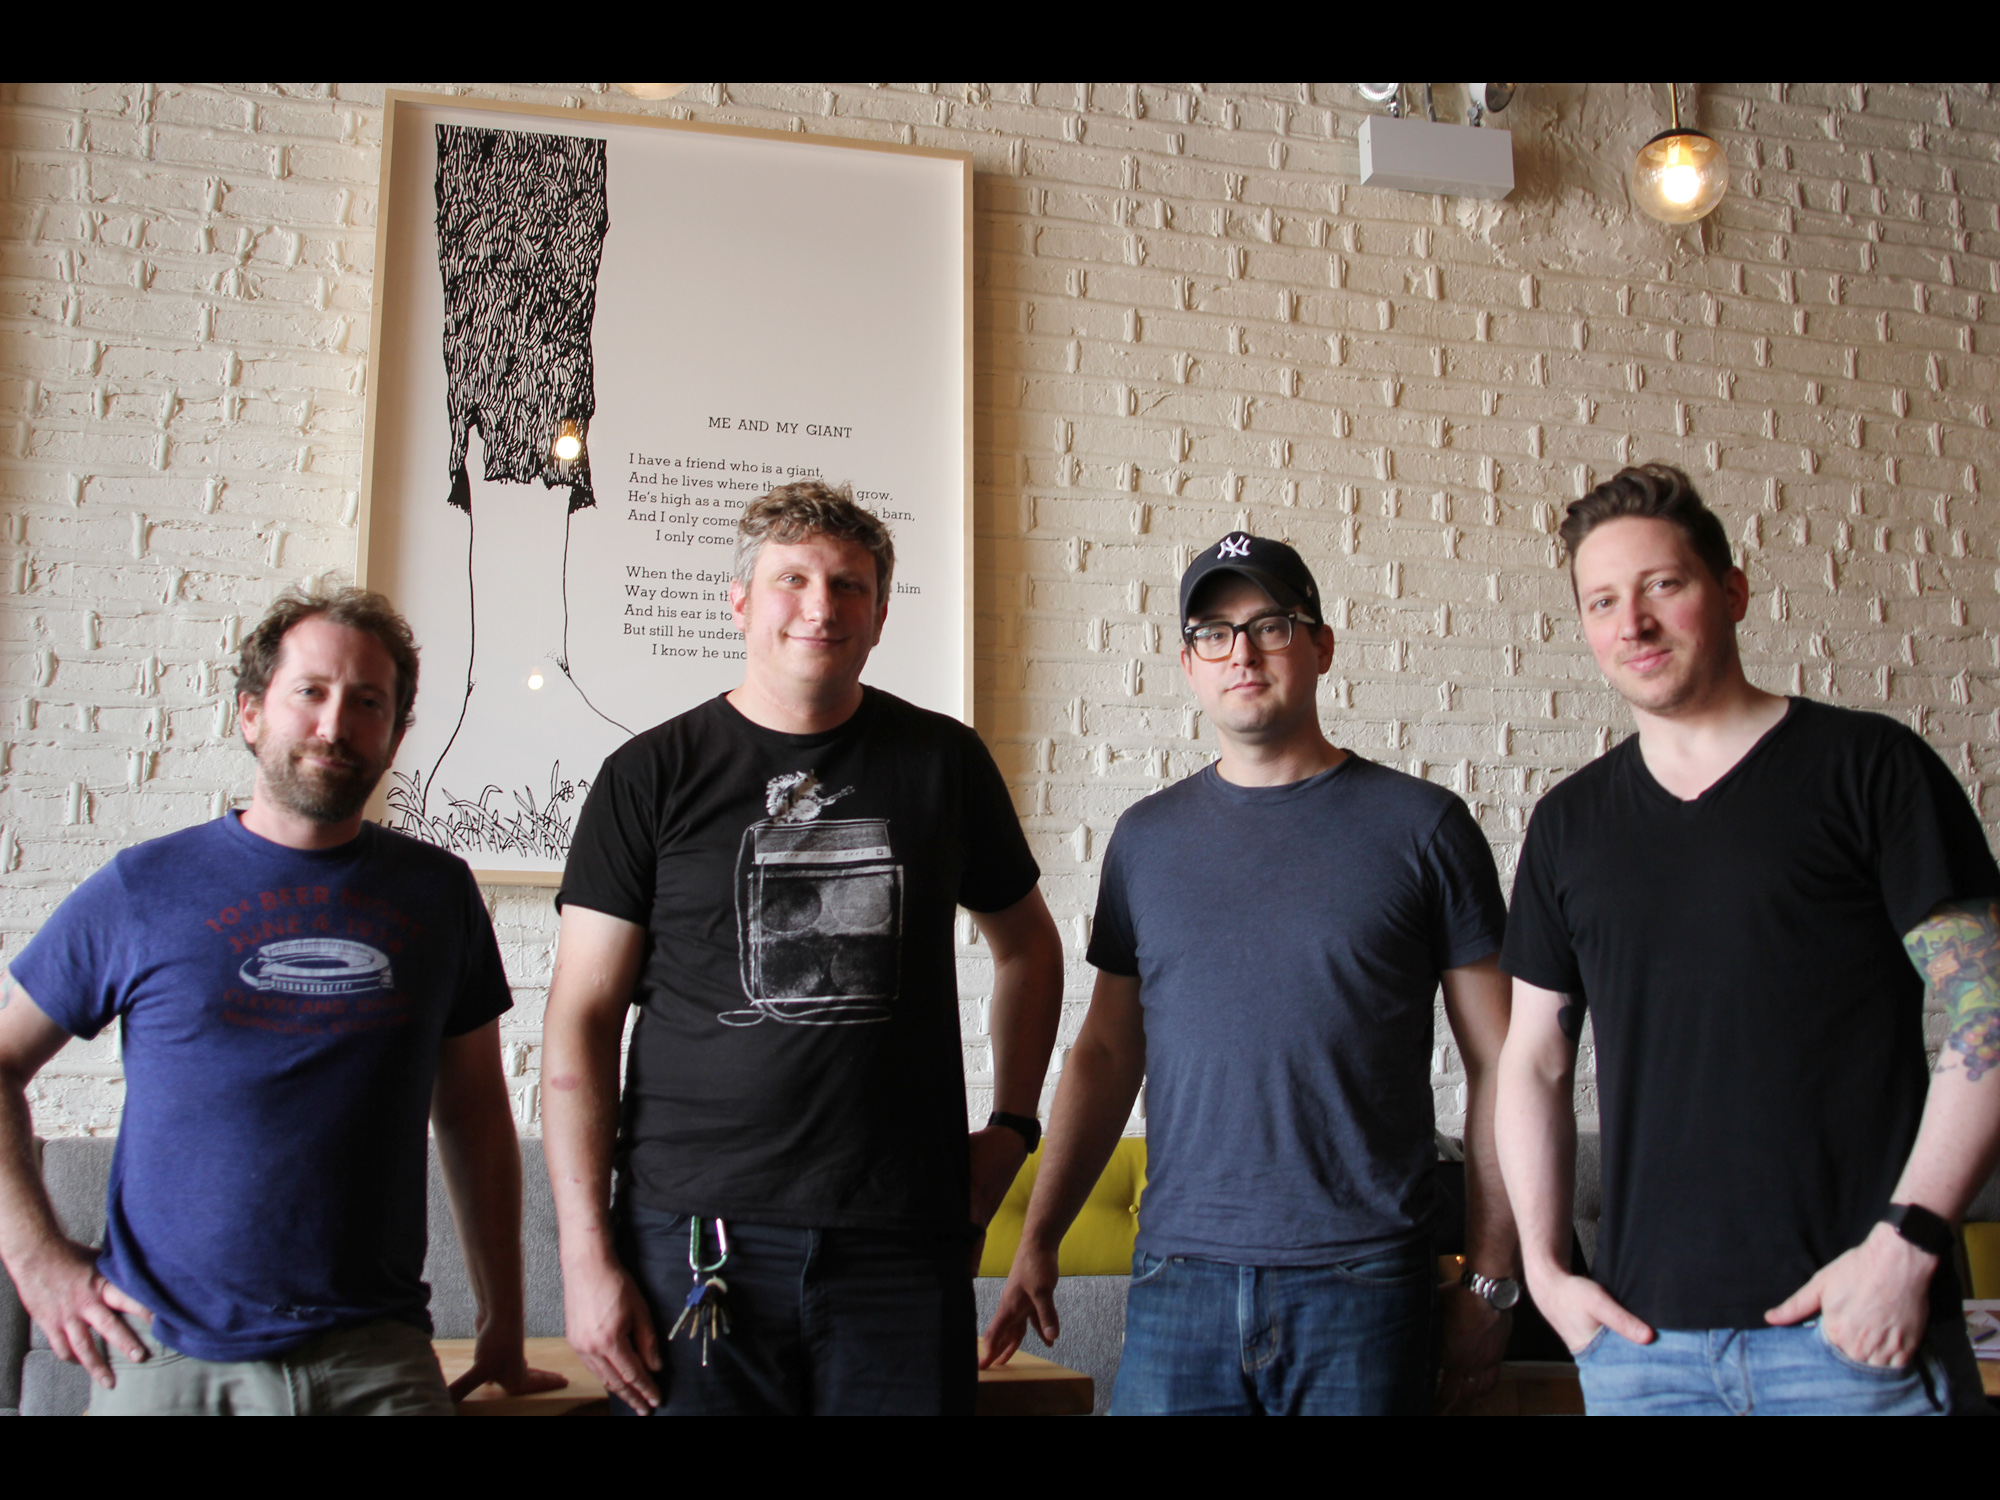 THEY MIGHT BE GIANT:<br> ROB LEVITT TALKS TO JASON VINCENT AND BEN LUSTBADER